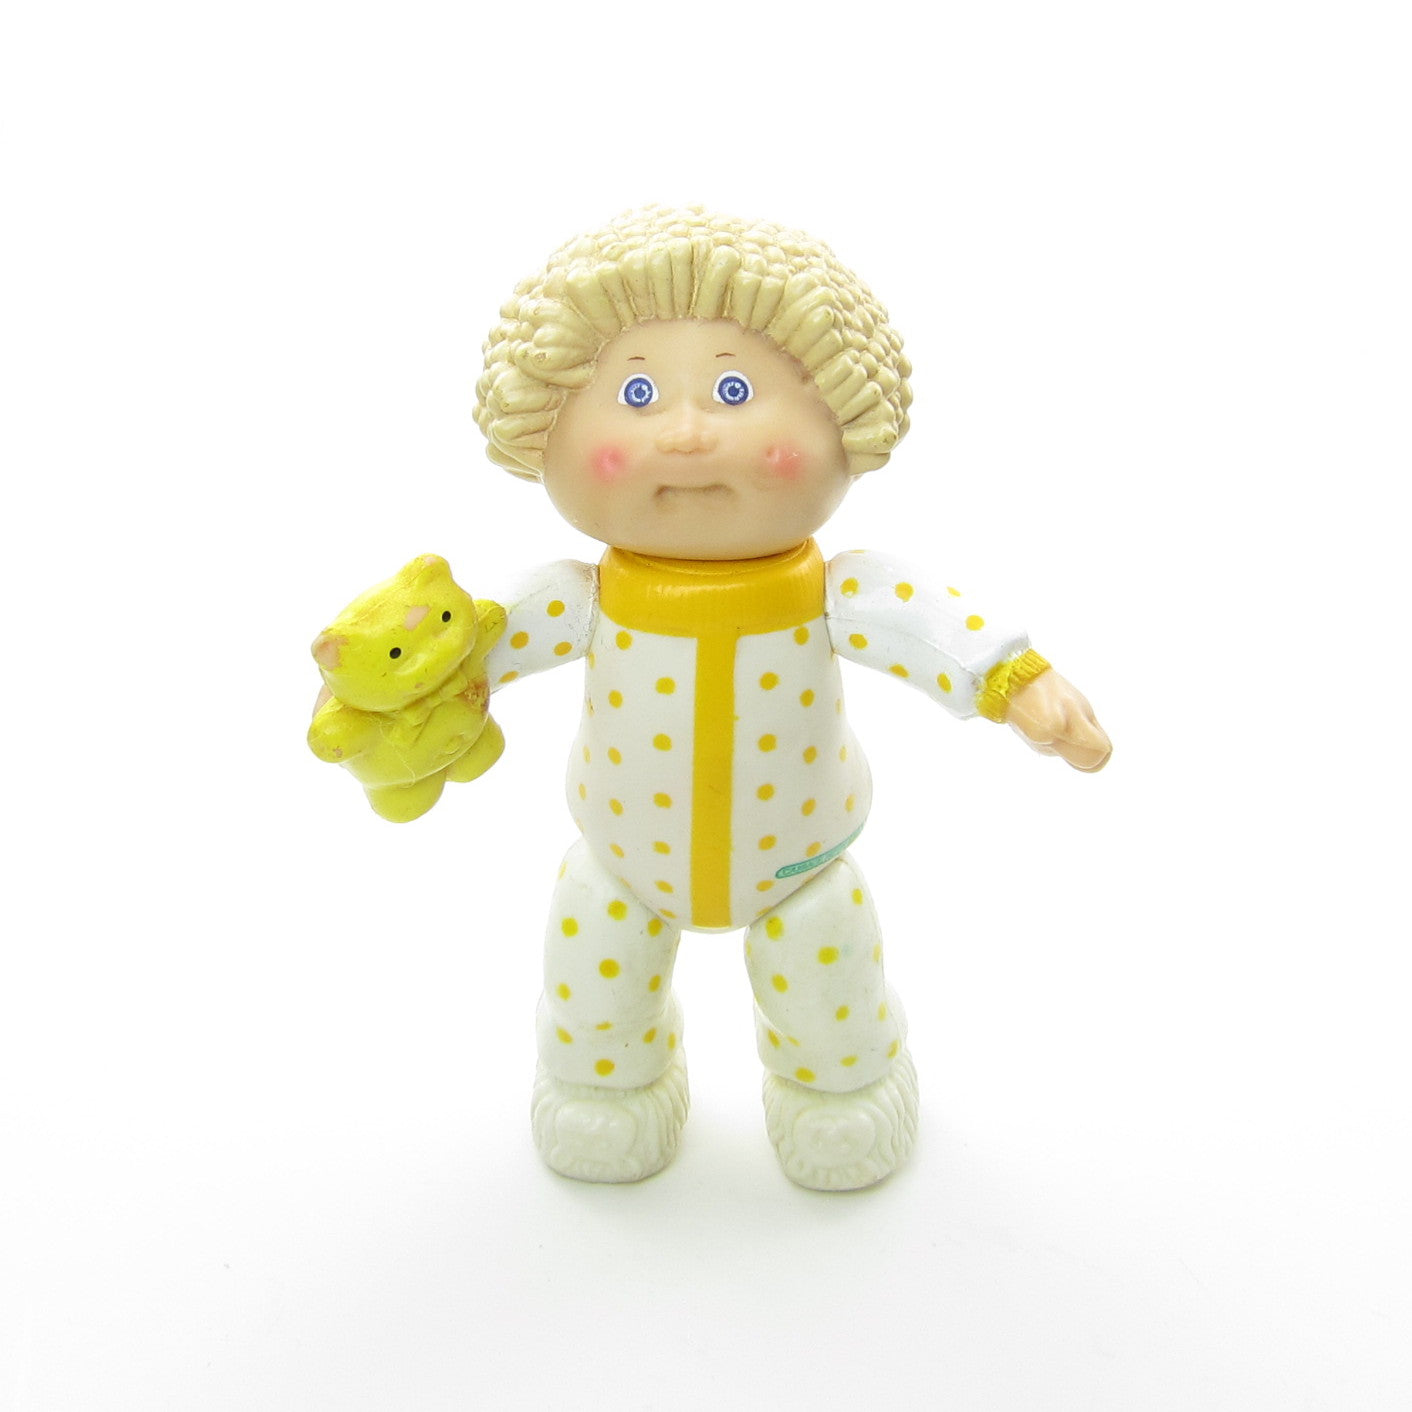 Cabbage Patch Kids boy in pajamas with teddy bear poseable figure